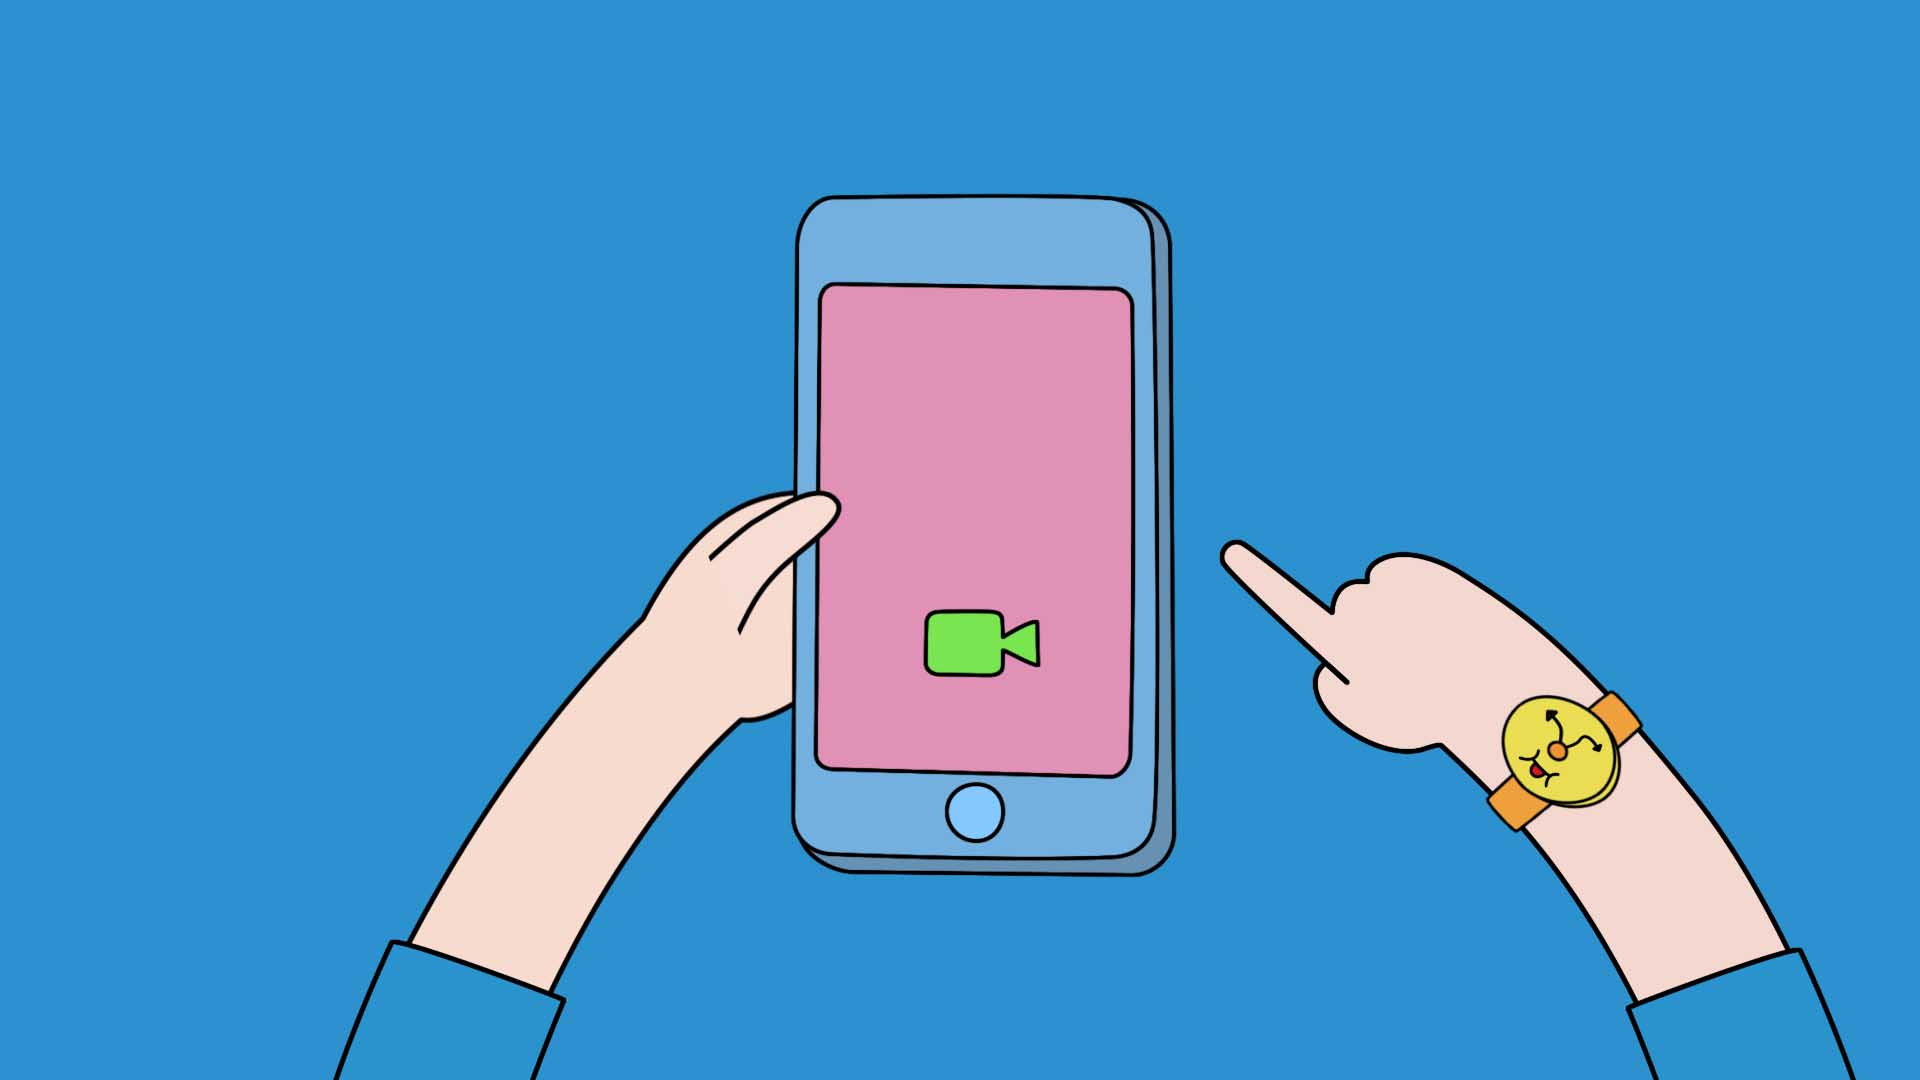 2D animated of hands holding a phone